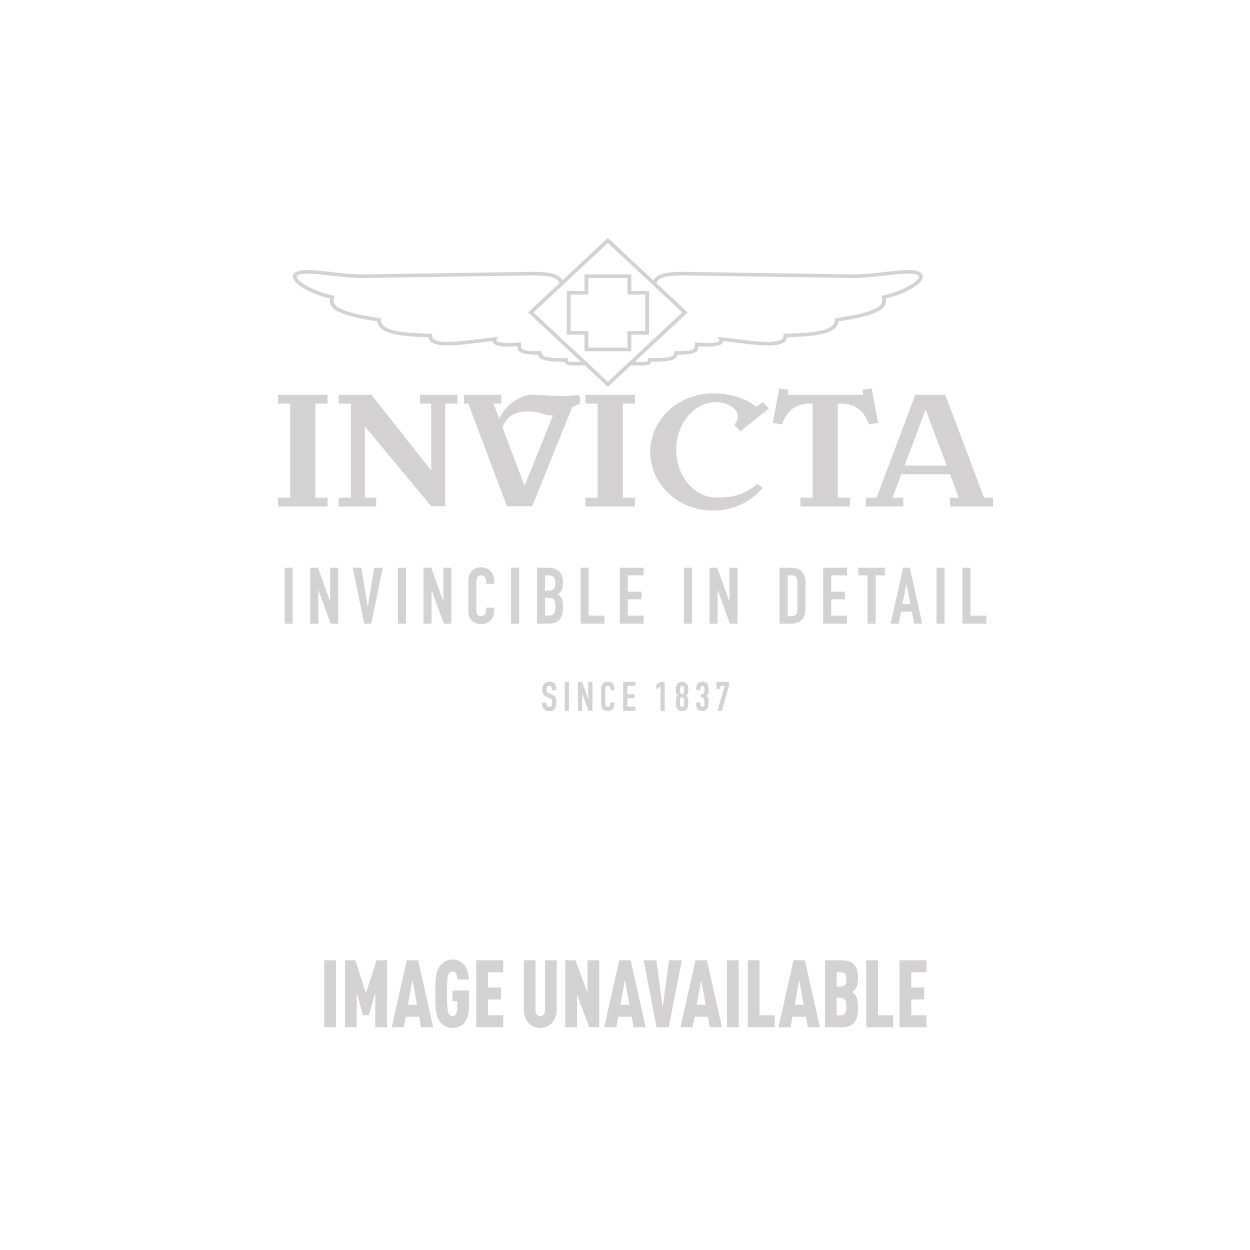 Invicta Sea Spider Mechanical Watch - Gold case with Gold, Grey tone Stainless Steel, Polyurethane band - Model 1262